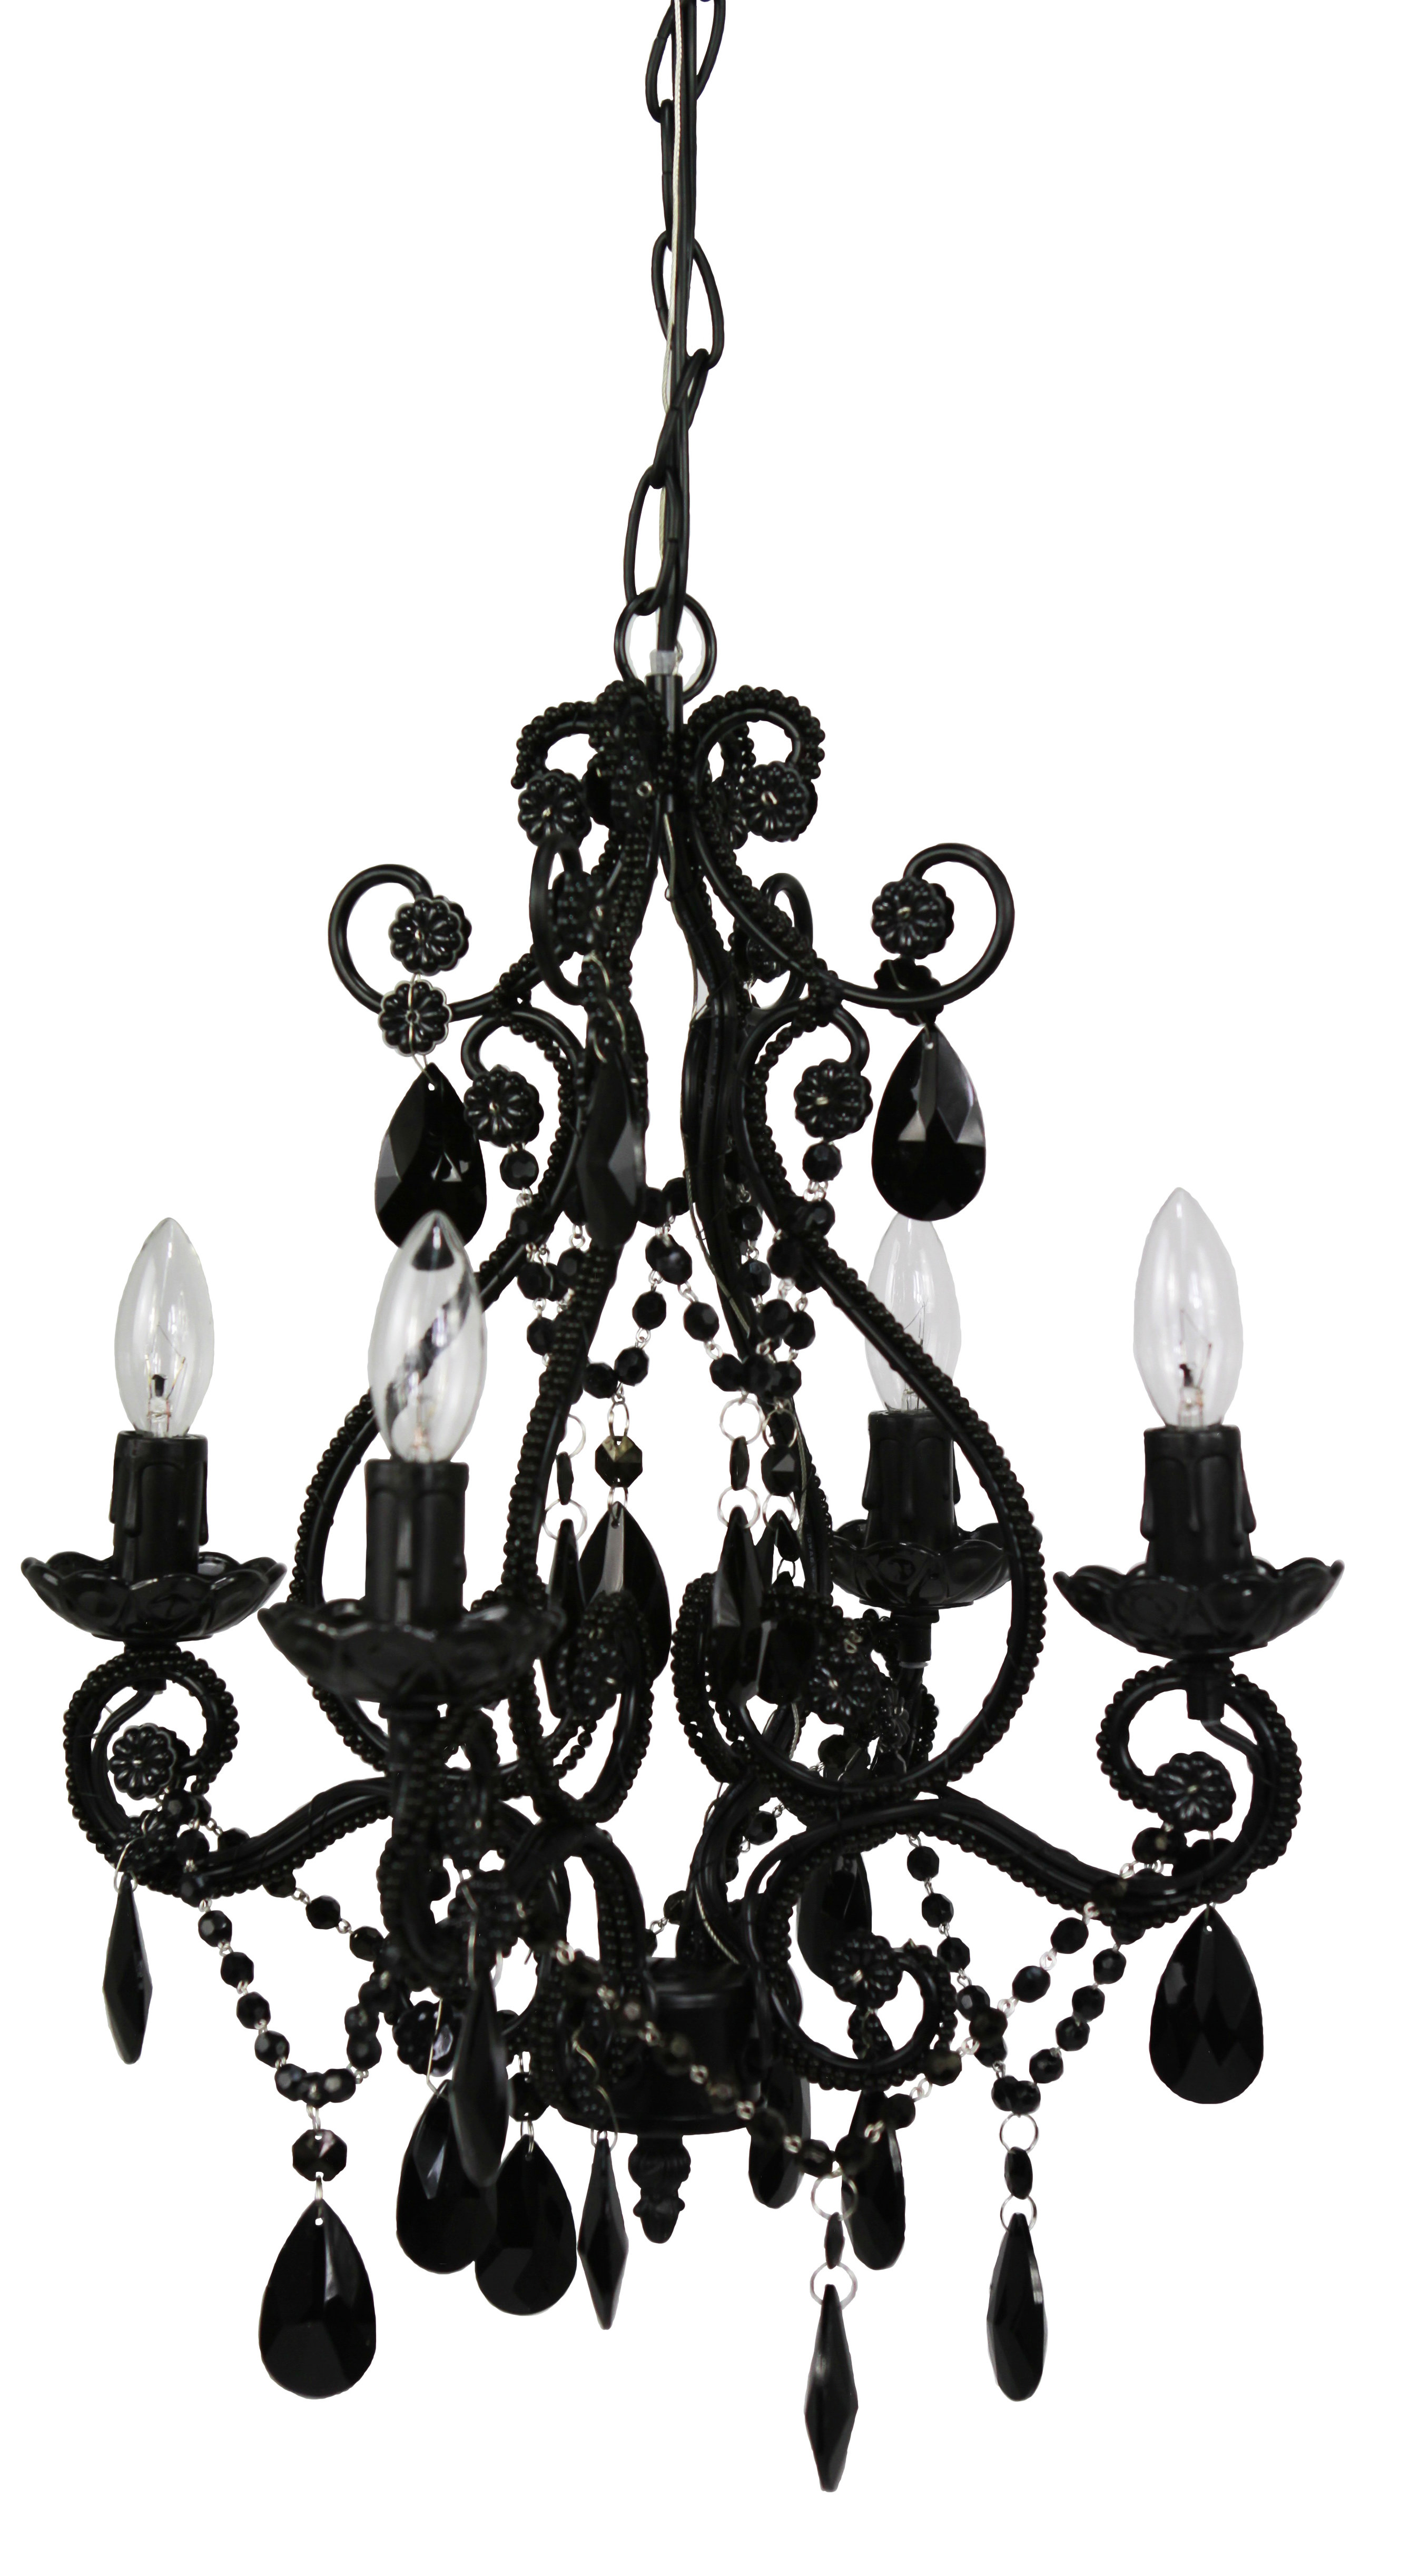 Aldora 4 Light Candle Style Chandeliers Inside Well Known Aldora 4 Light Candle Style Chandelier (Gallery 1 of 20)